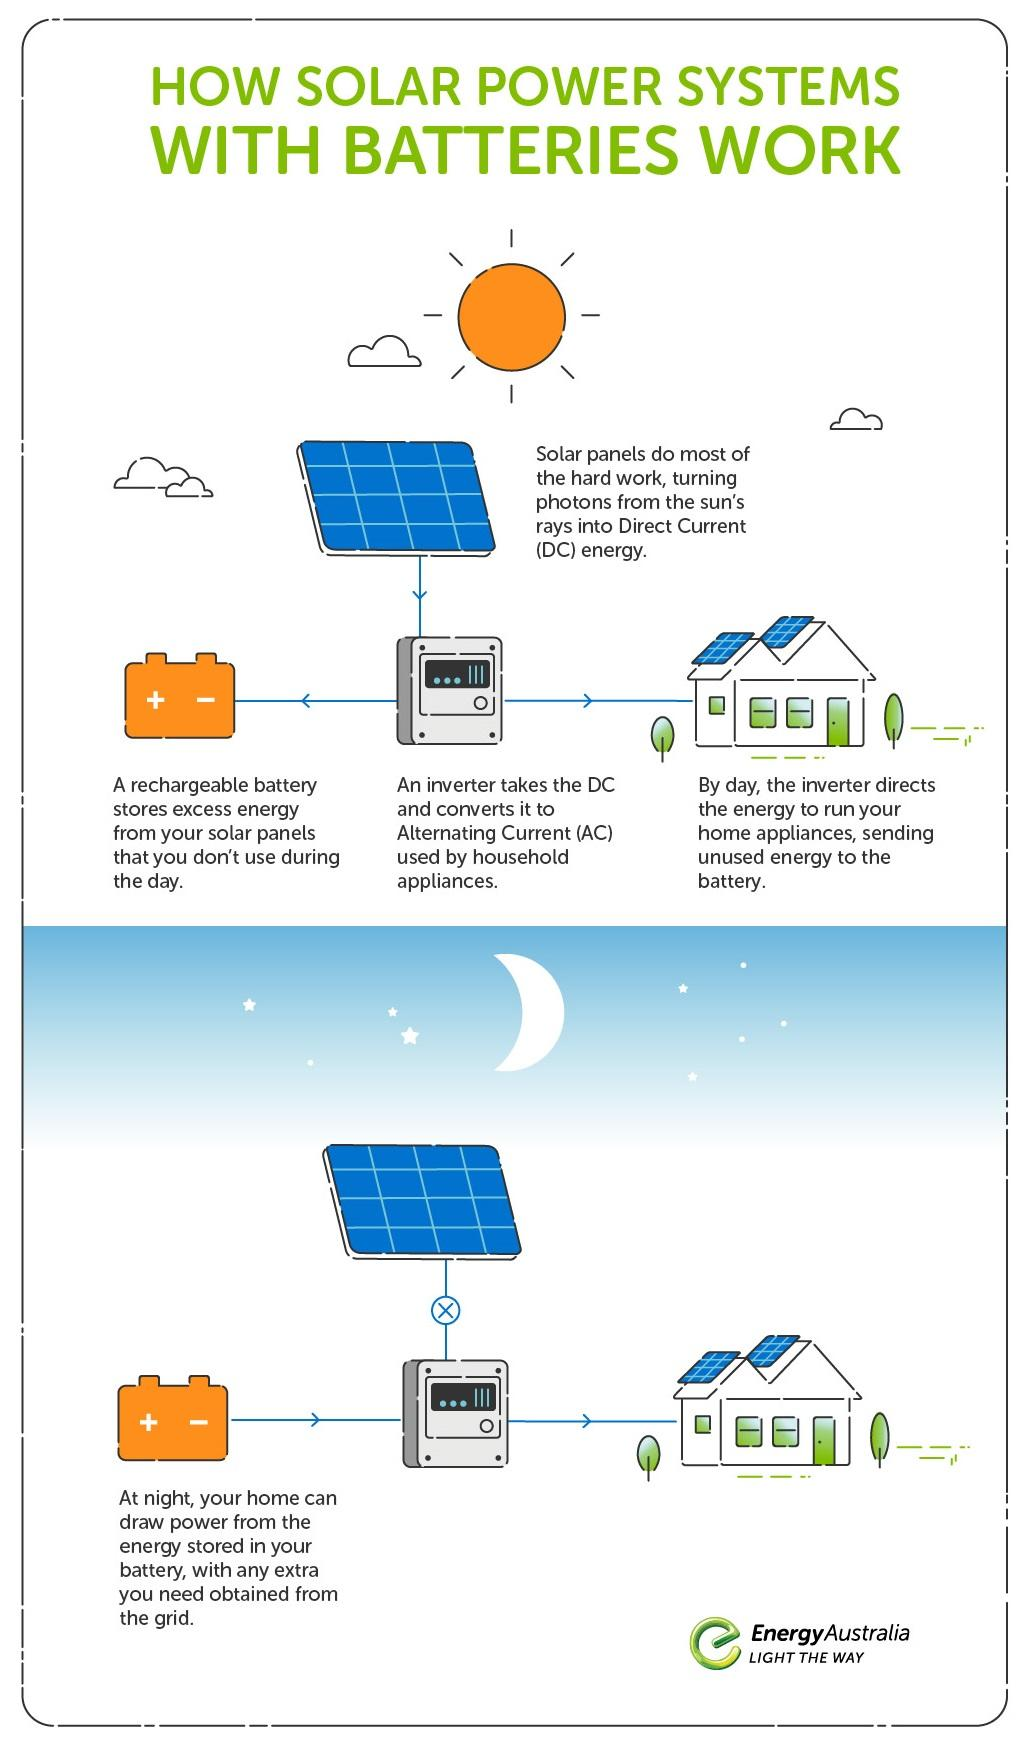 Infographic showing how solar power systems with batteries work